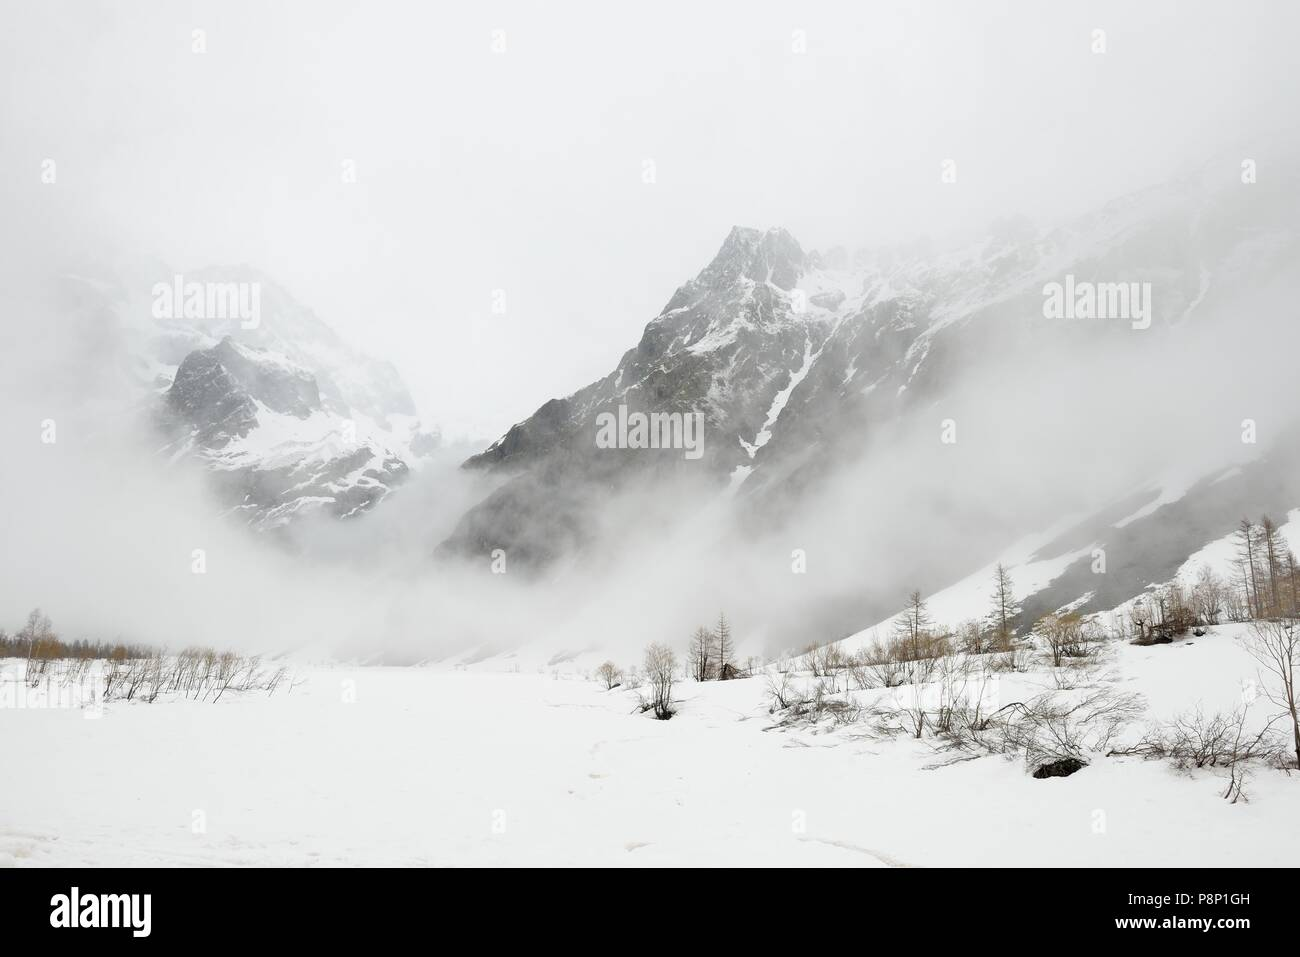 Dramatic atmosphere during springtime in the French Alps with the snow melting and clouds hanging low - Stock Image